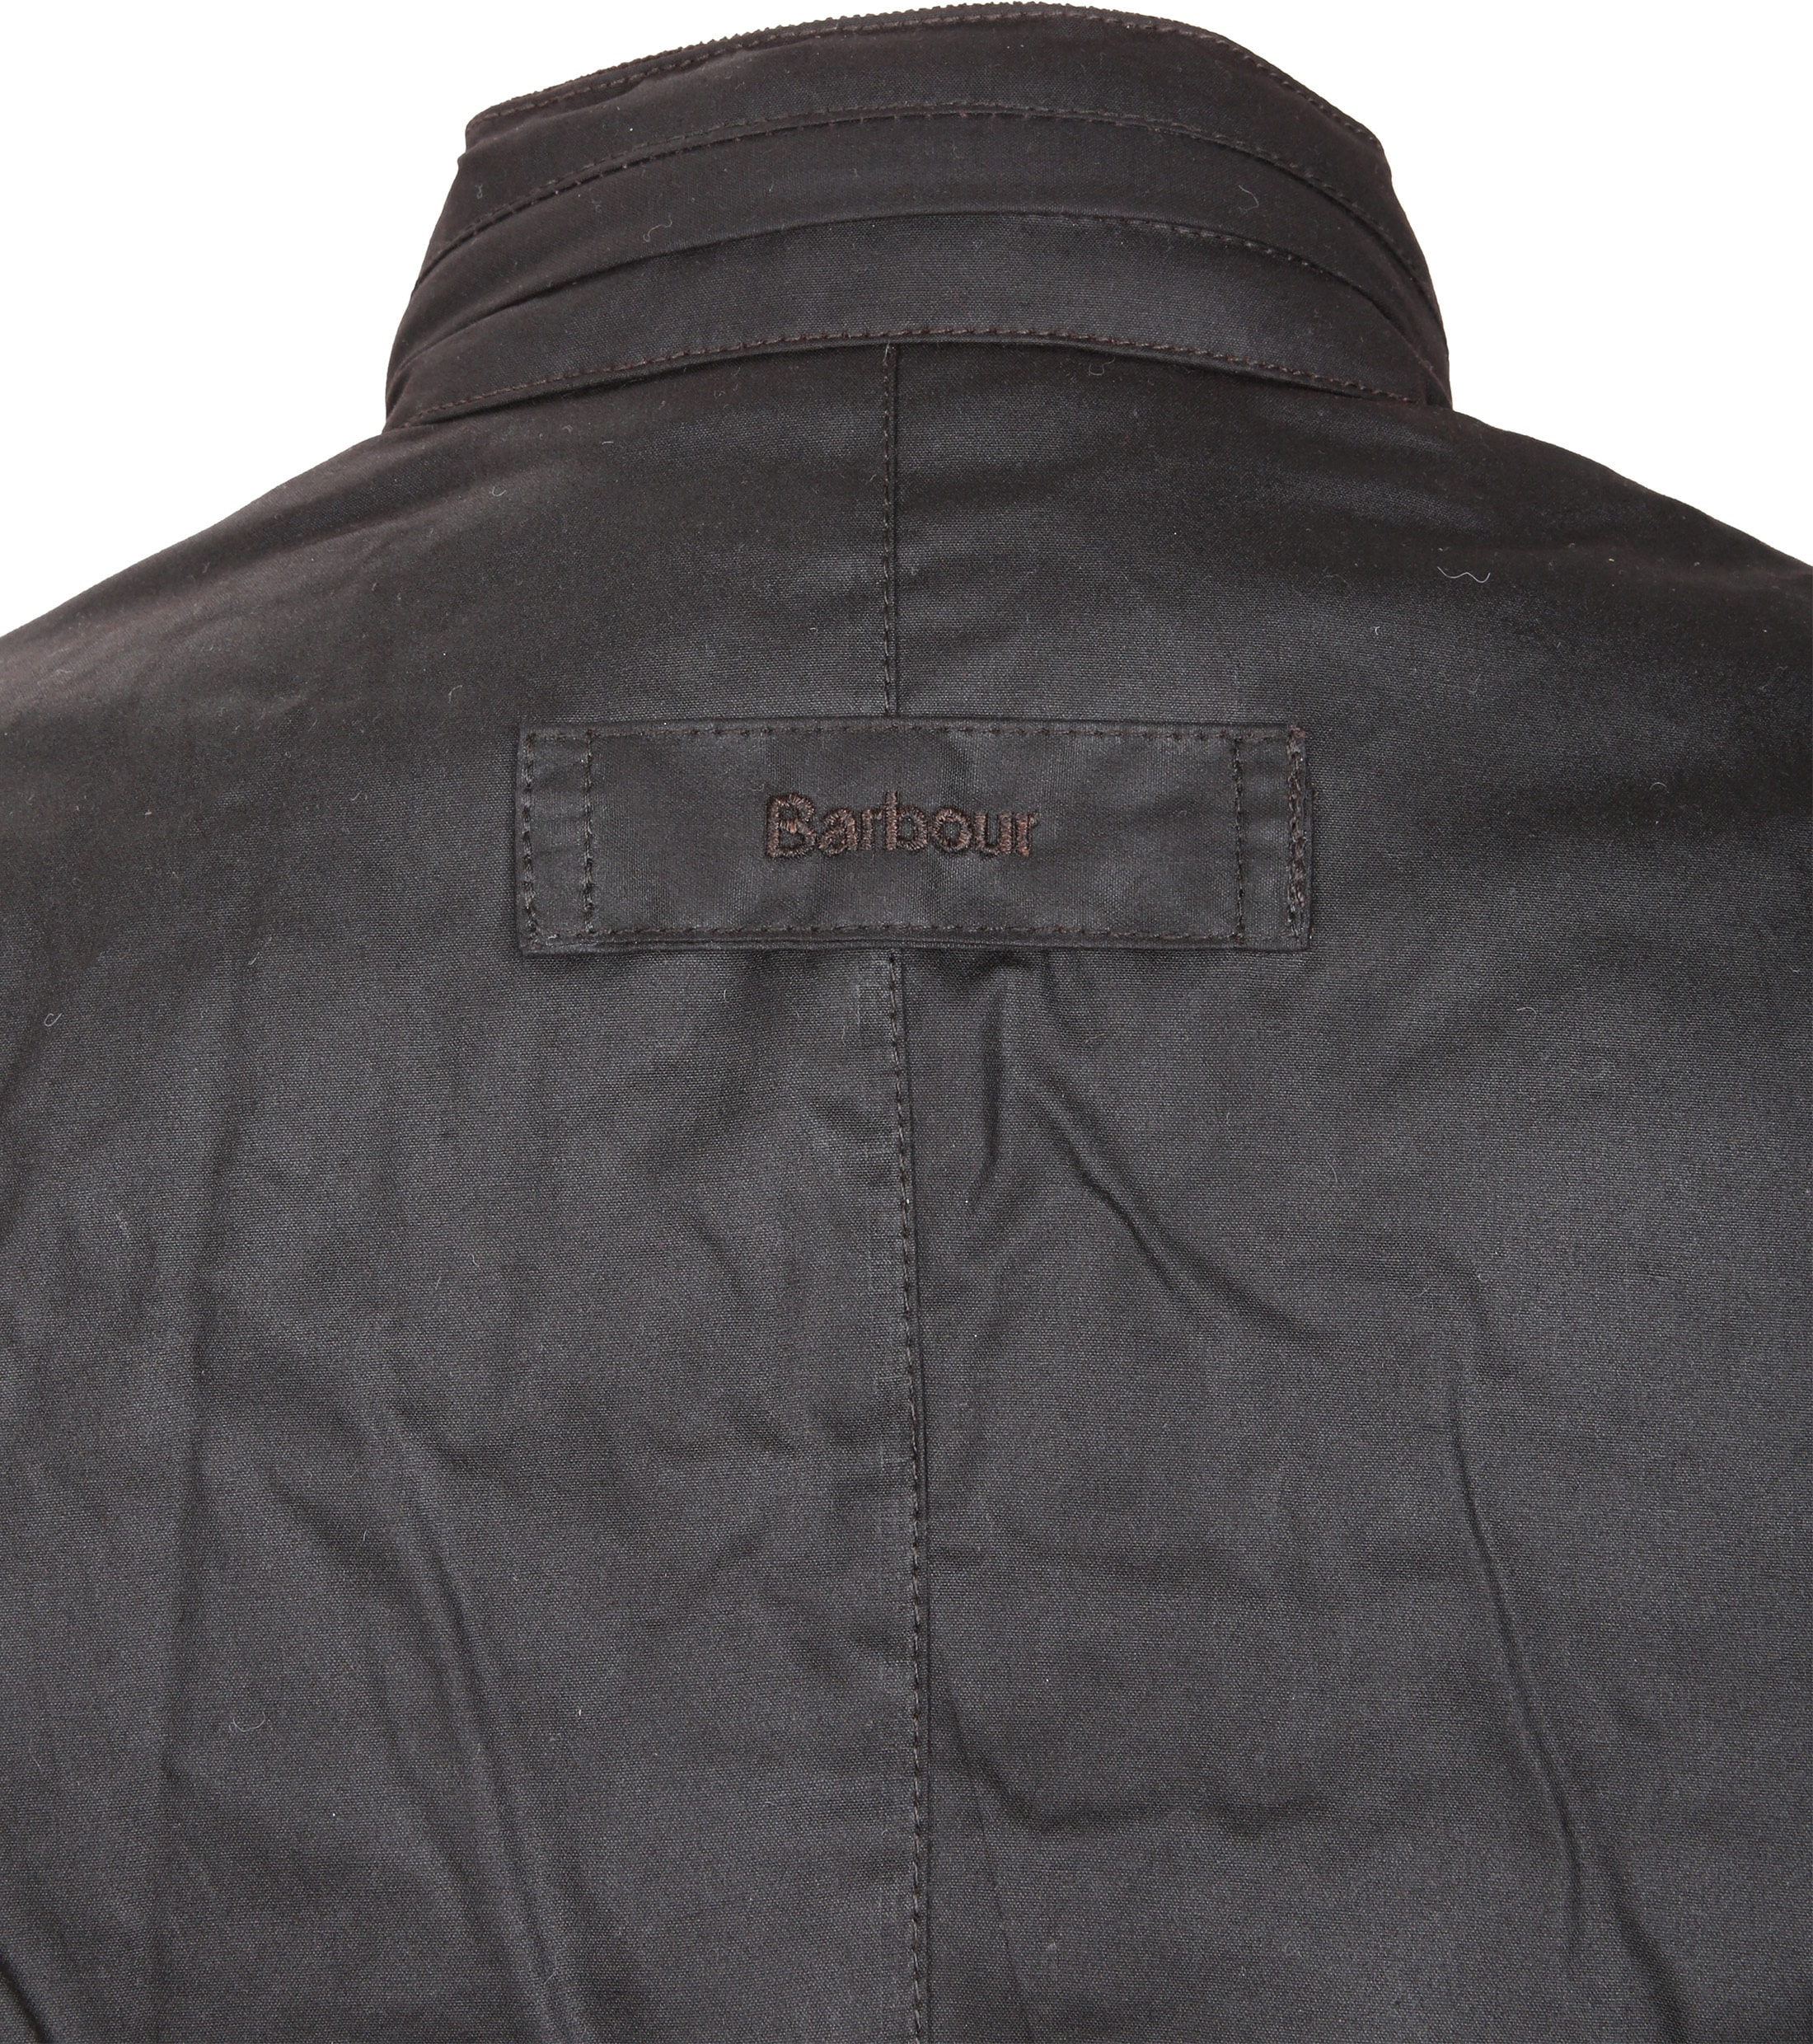 Barbour Waxjas Corbridge Rustic foto 5